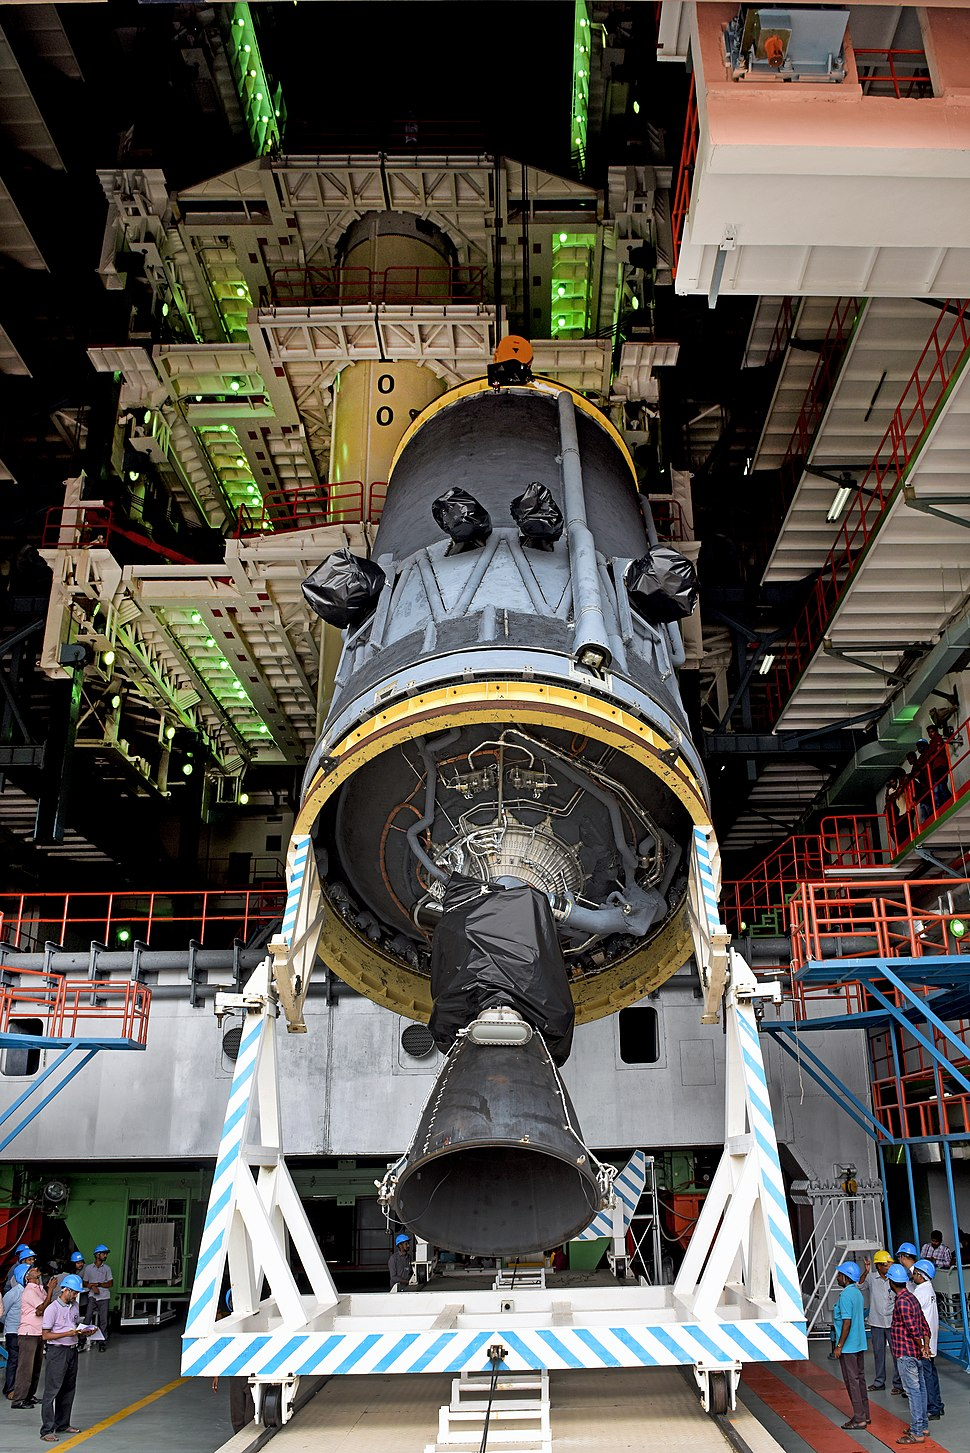 GSLV Mk III M1, Chandrayaan-2 - C25 cryogenic stage at Vehicle Assembly Building for vehicle integration